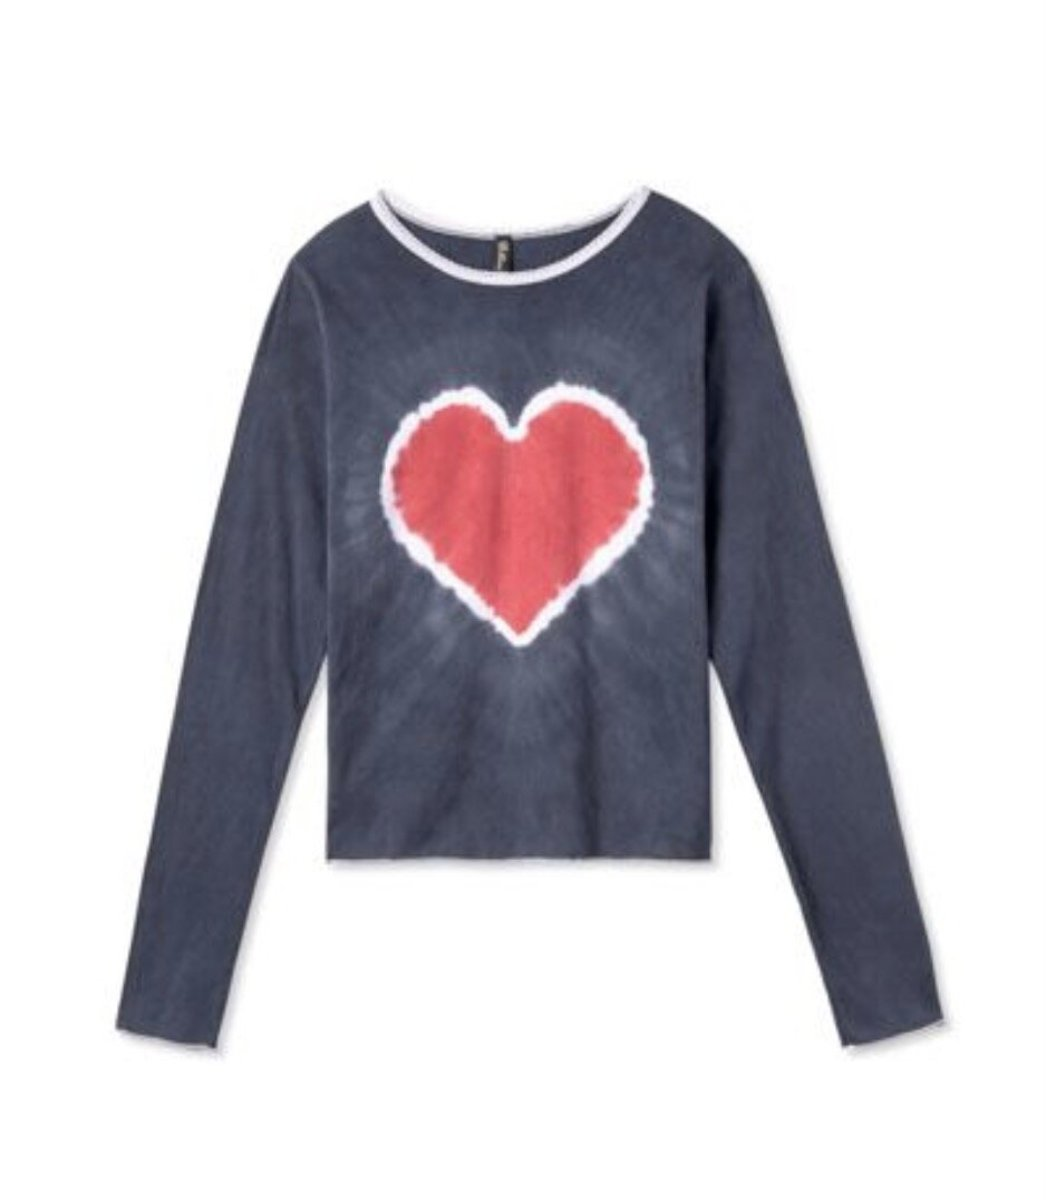 Pretties Tie Dye Heart Baby Tee, $85, available here.